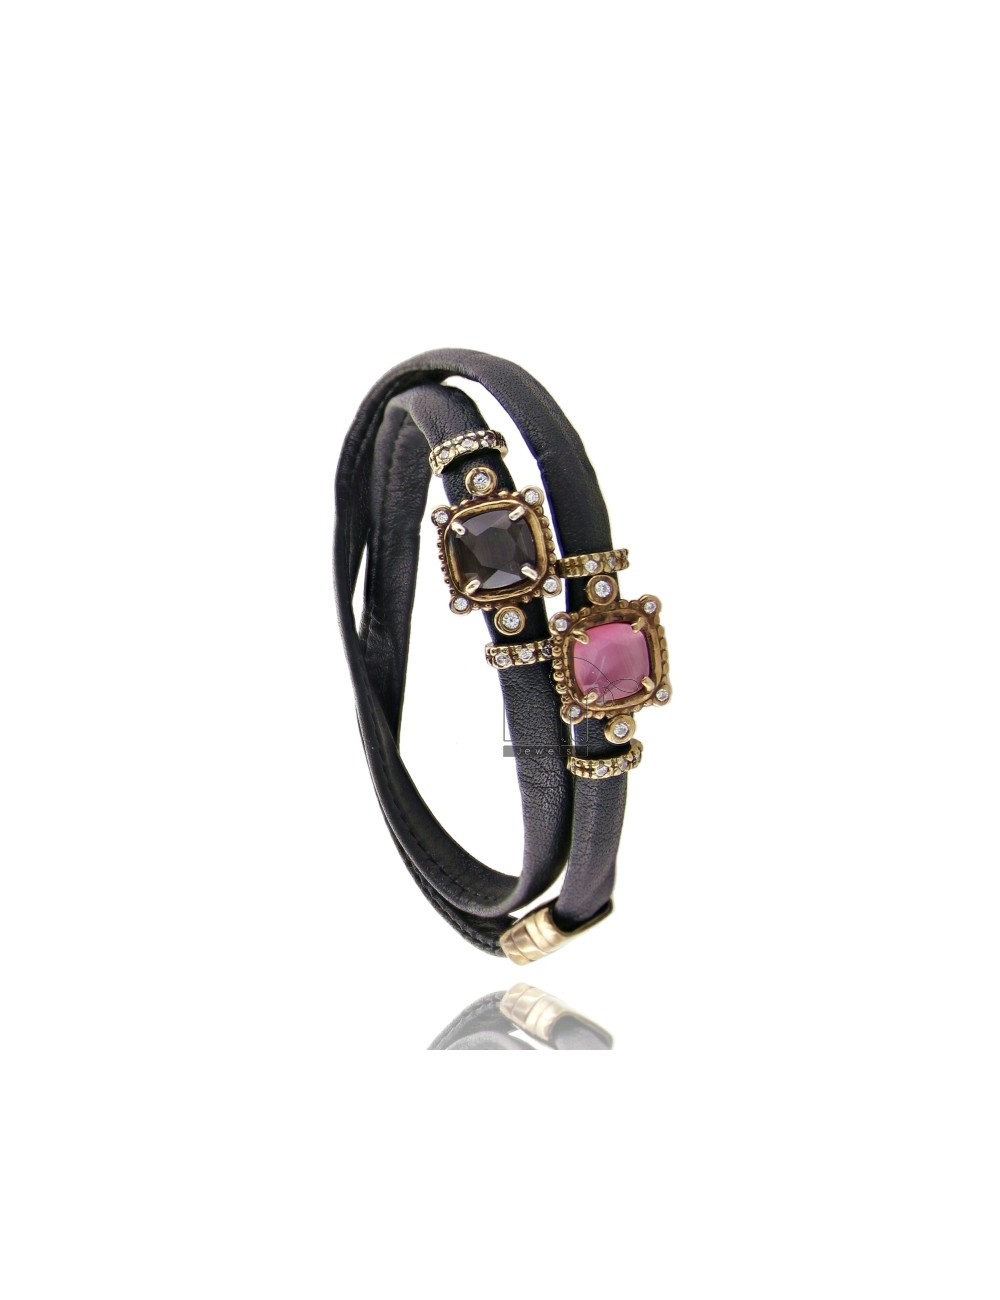 BRACELET DOUBLE ROUND BLACK LEATHER, WITH STONES HYDROTHERMAL CENTRAL SQUARE, ZIRCONIA AND MAGNETIC CLOSURE IN OLD ROSE GOLD PLA